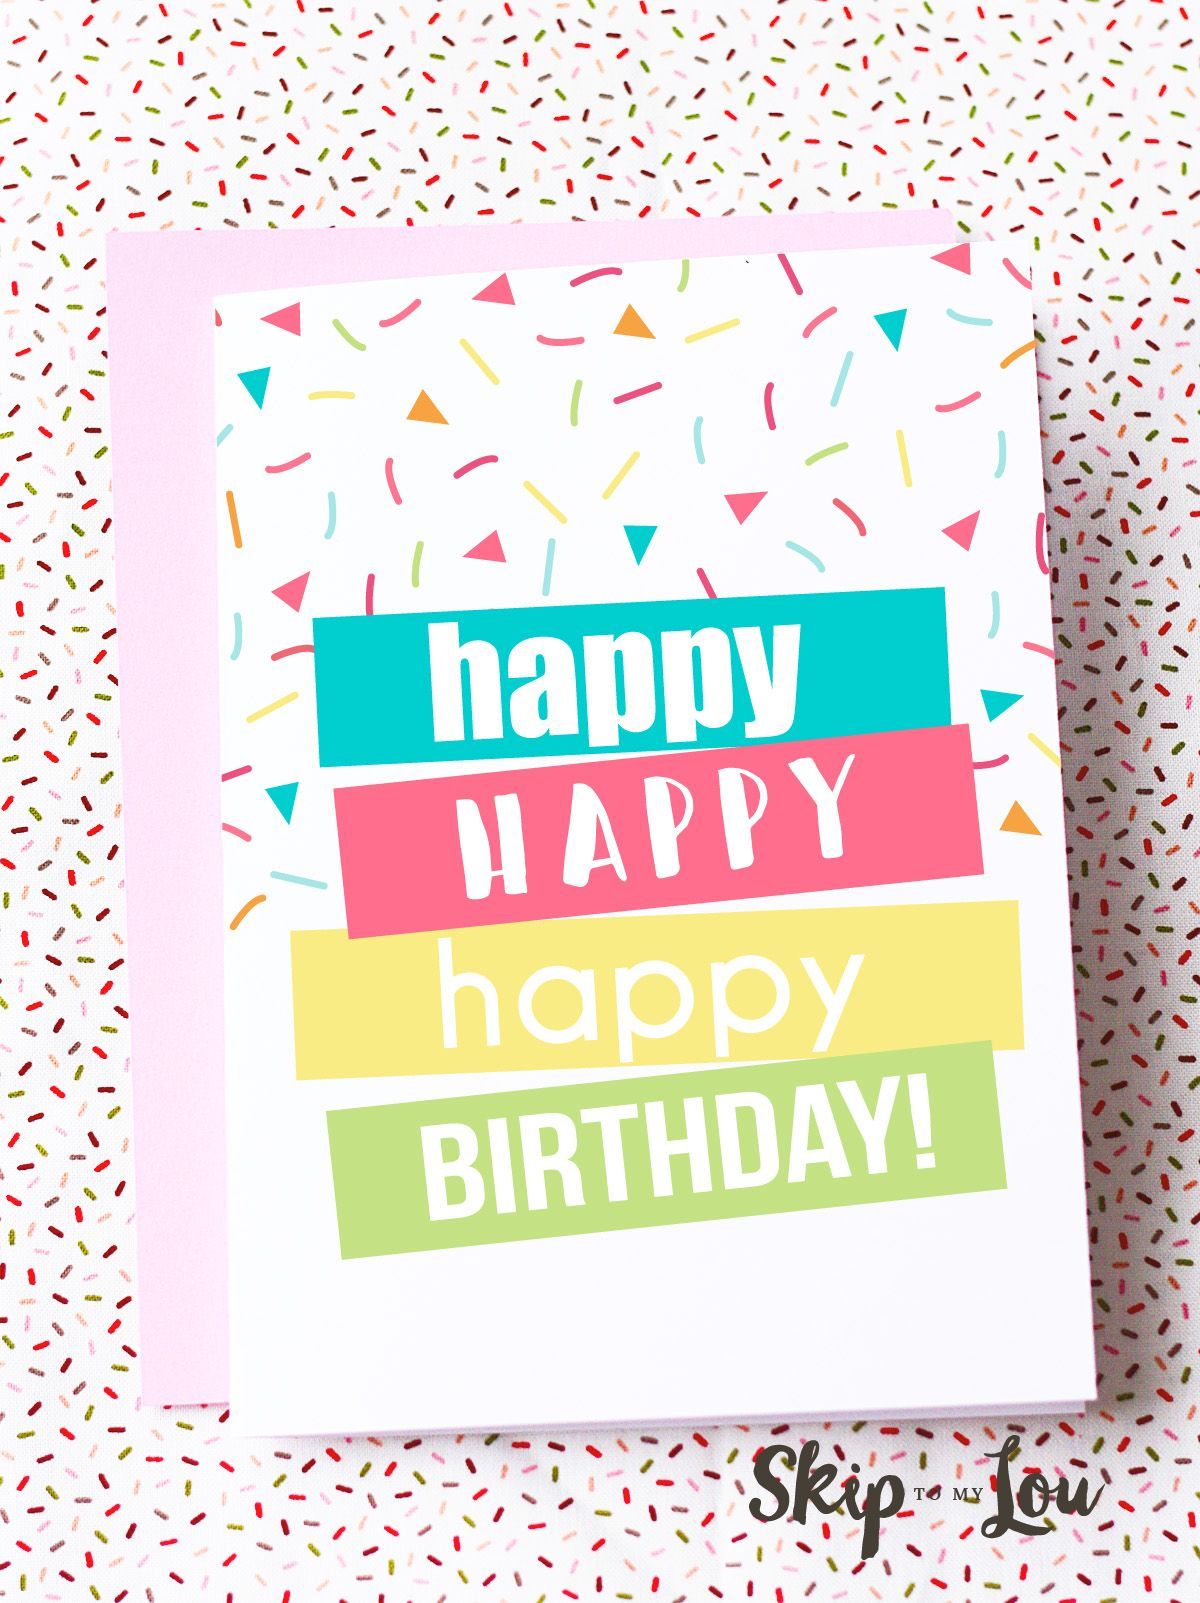 Free Printable Birthday Cards Free Printable Birthday Cards Birthday Cards To Print Happy Birthday Cards Printable